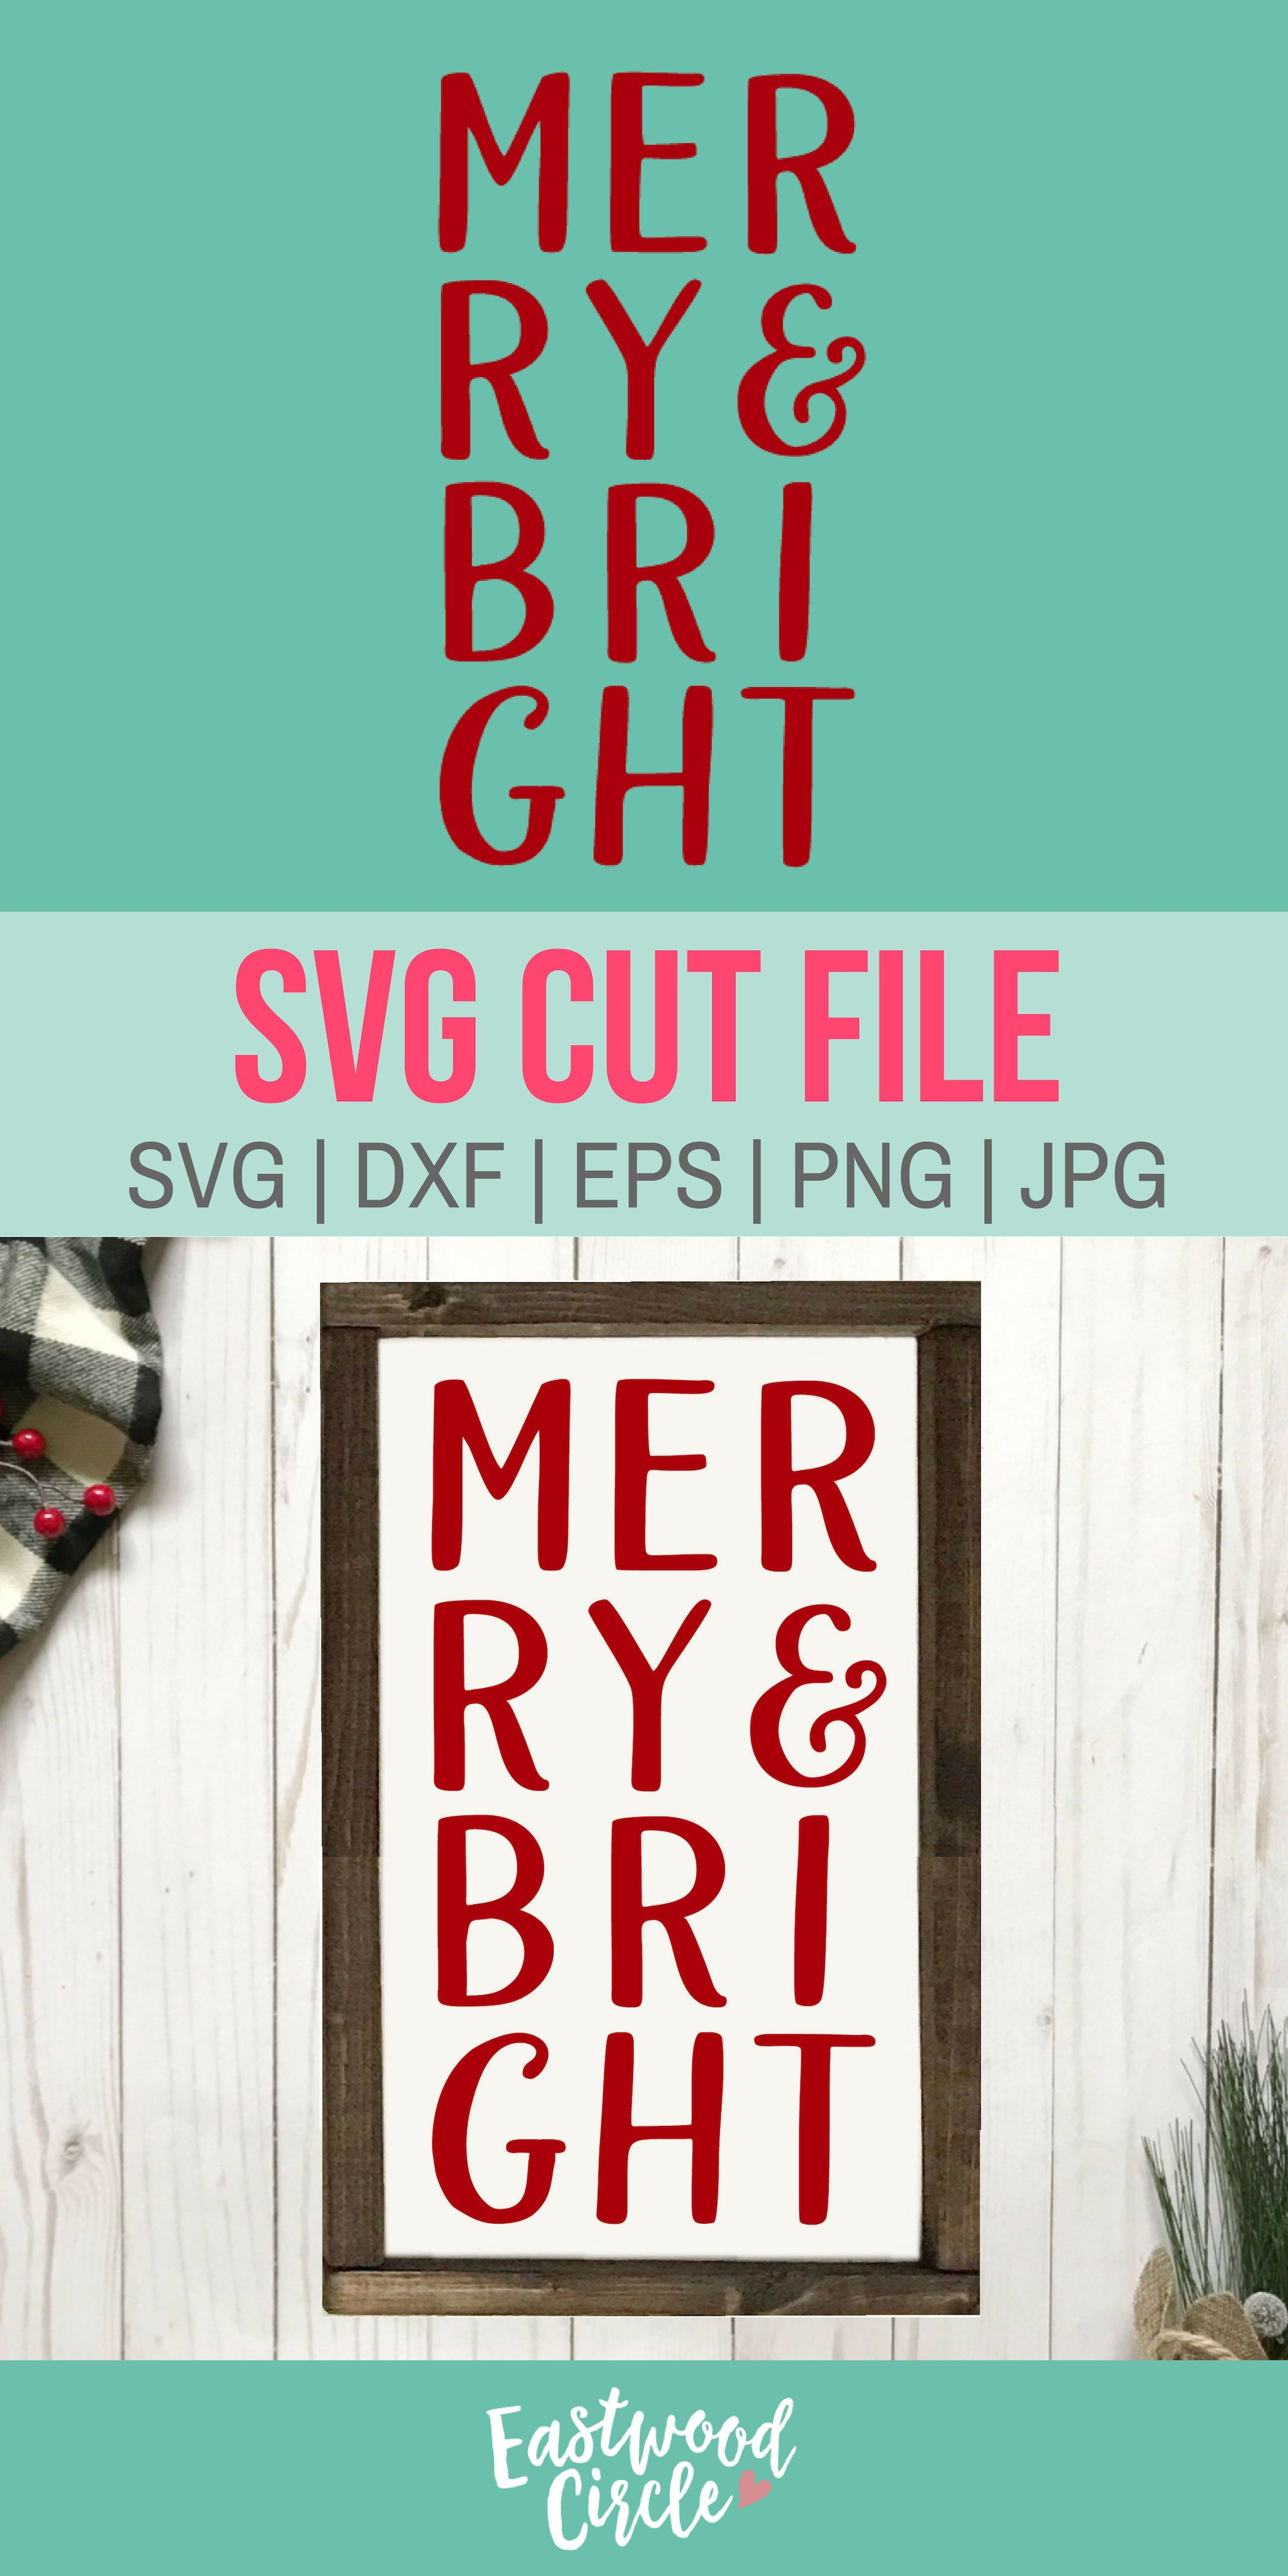 Merry and Bright svg, Christmas svg, Farmhouse svg